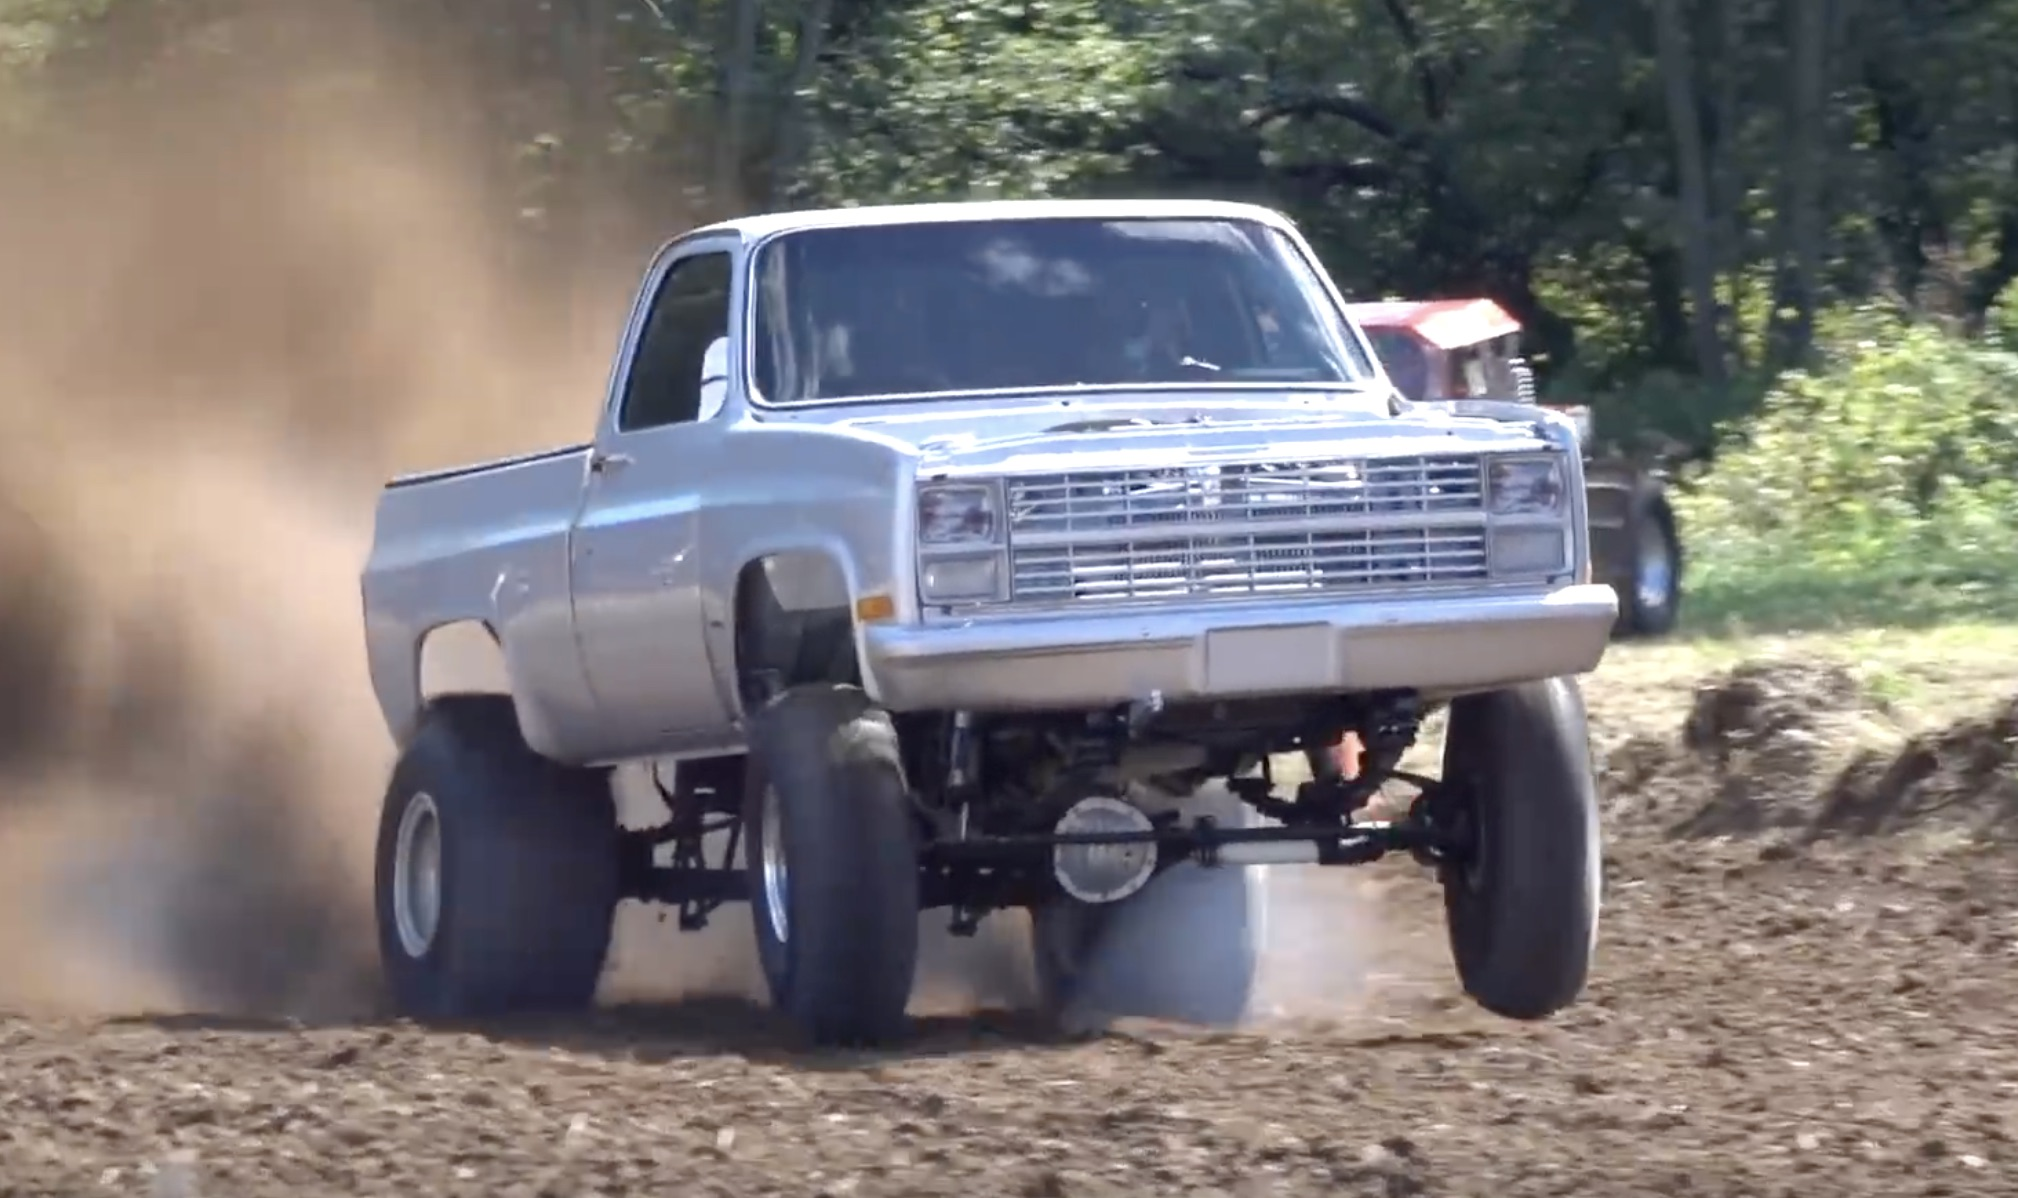 Dirt Drag Trucks In Michigan! Who Says Off-Roading Has To Be Slow?